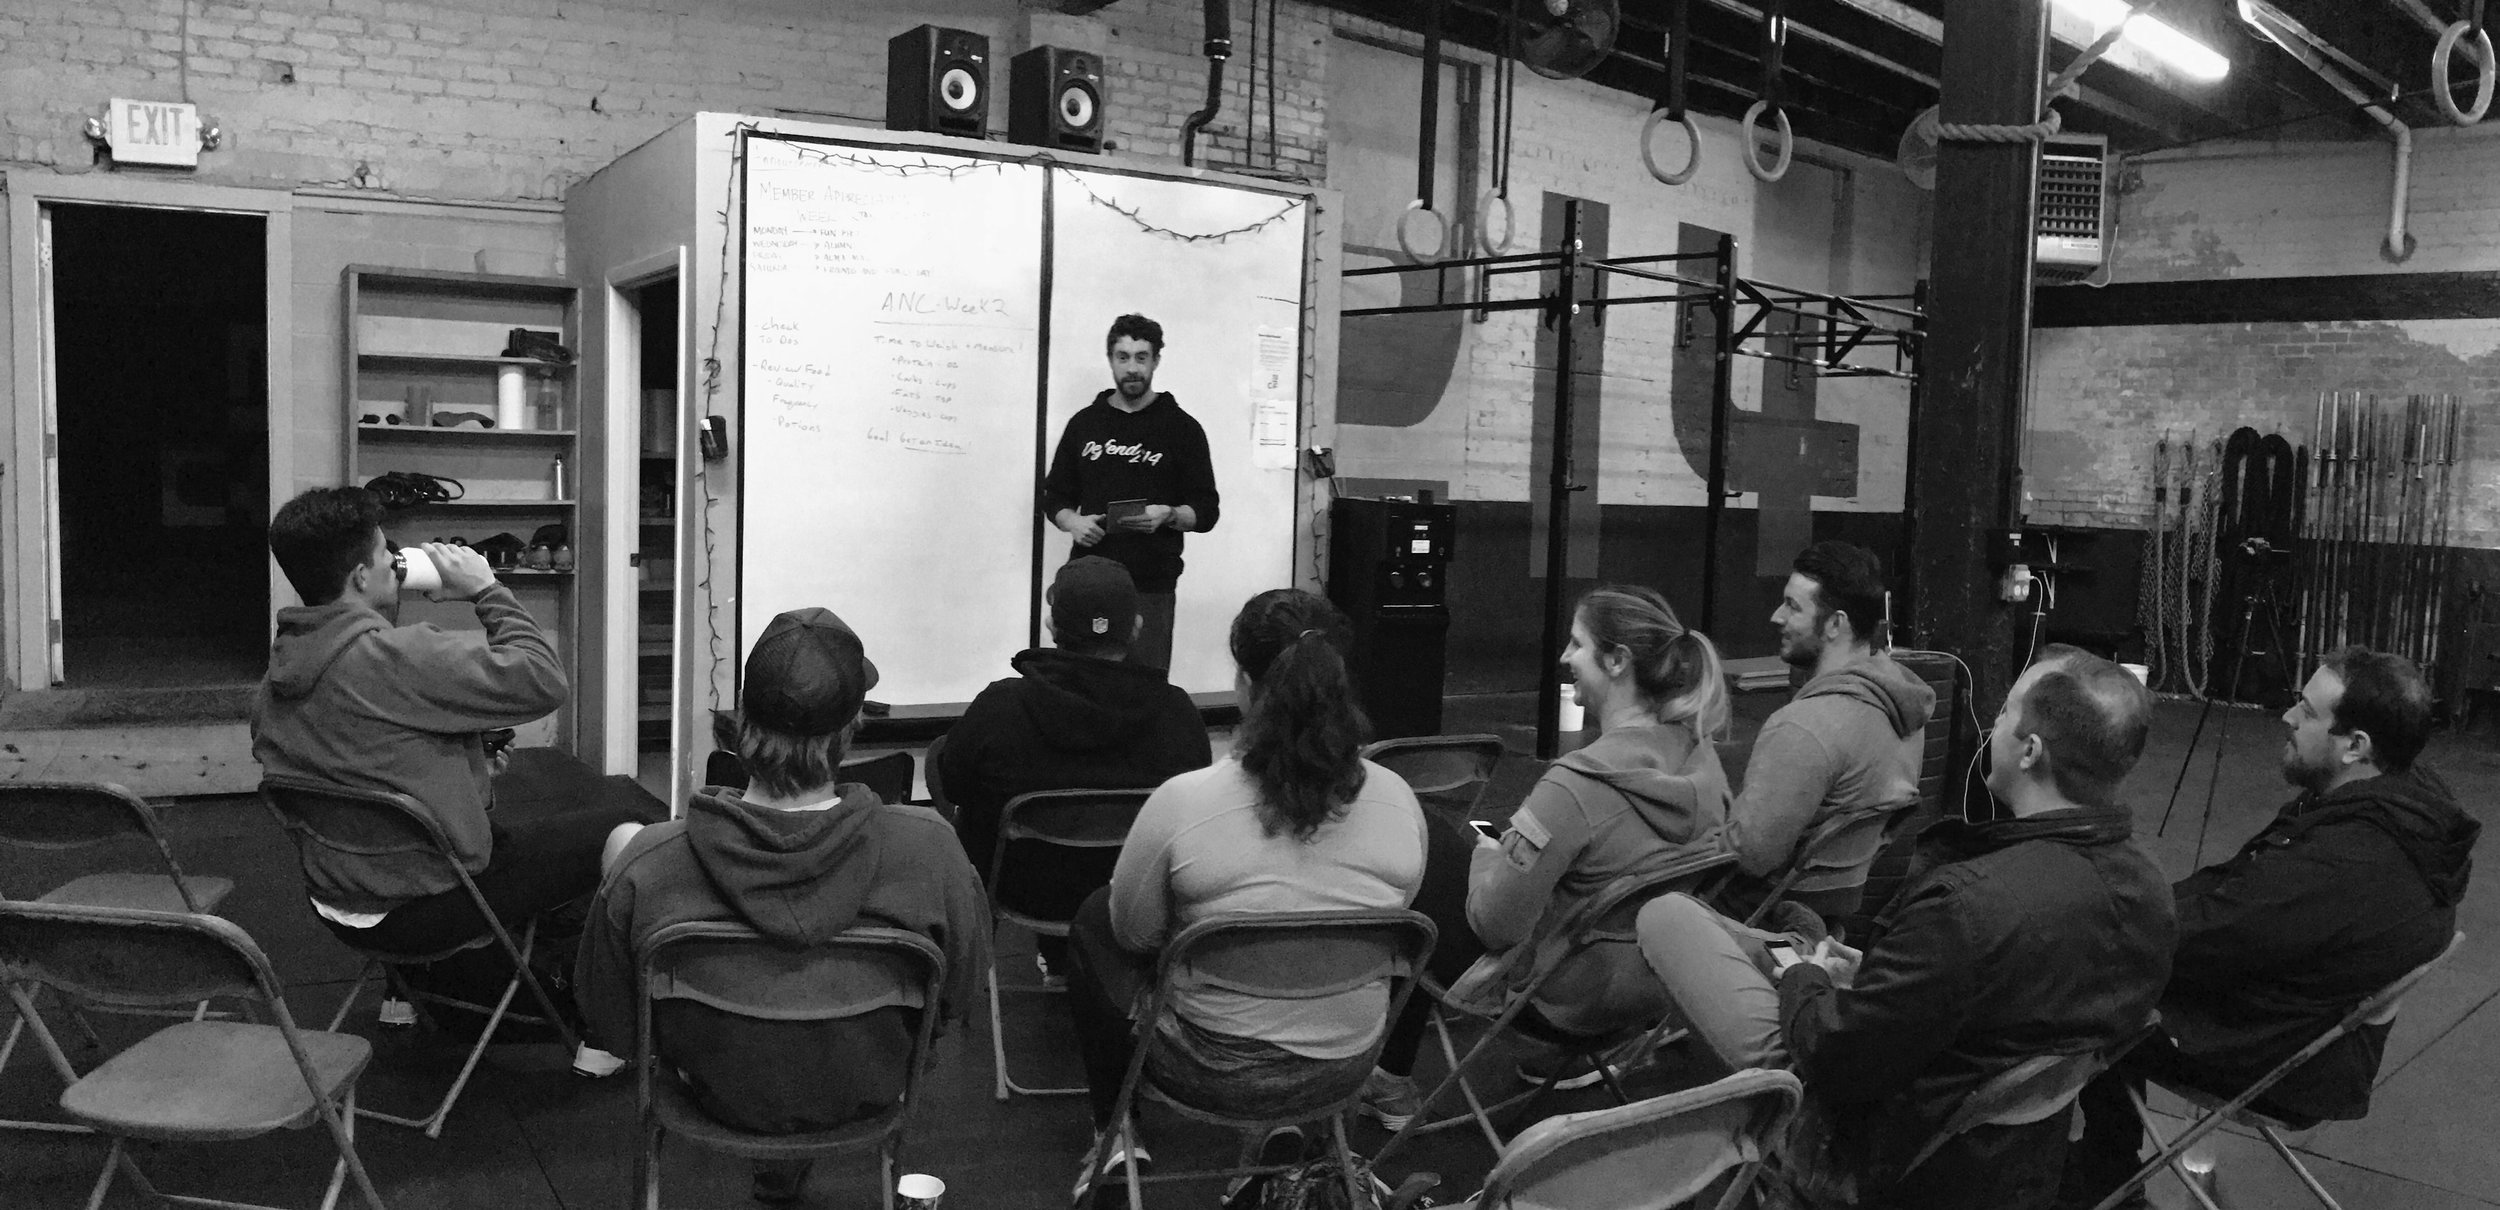 Teaching athletes at CrossFit 214 how to get the most out of their workouts, January 2017.